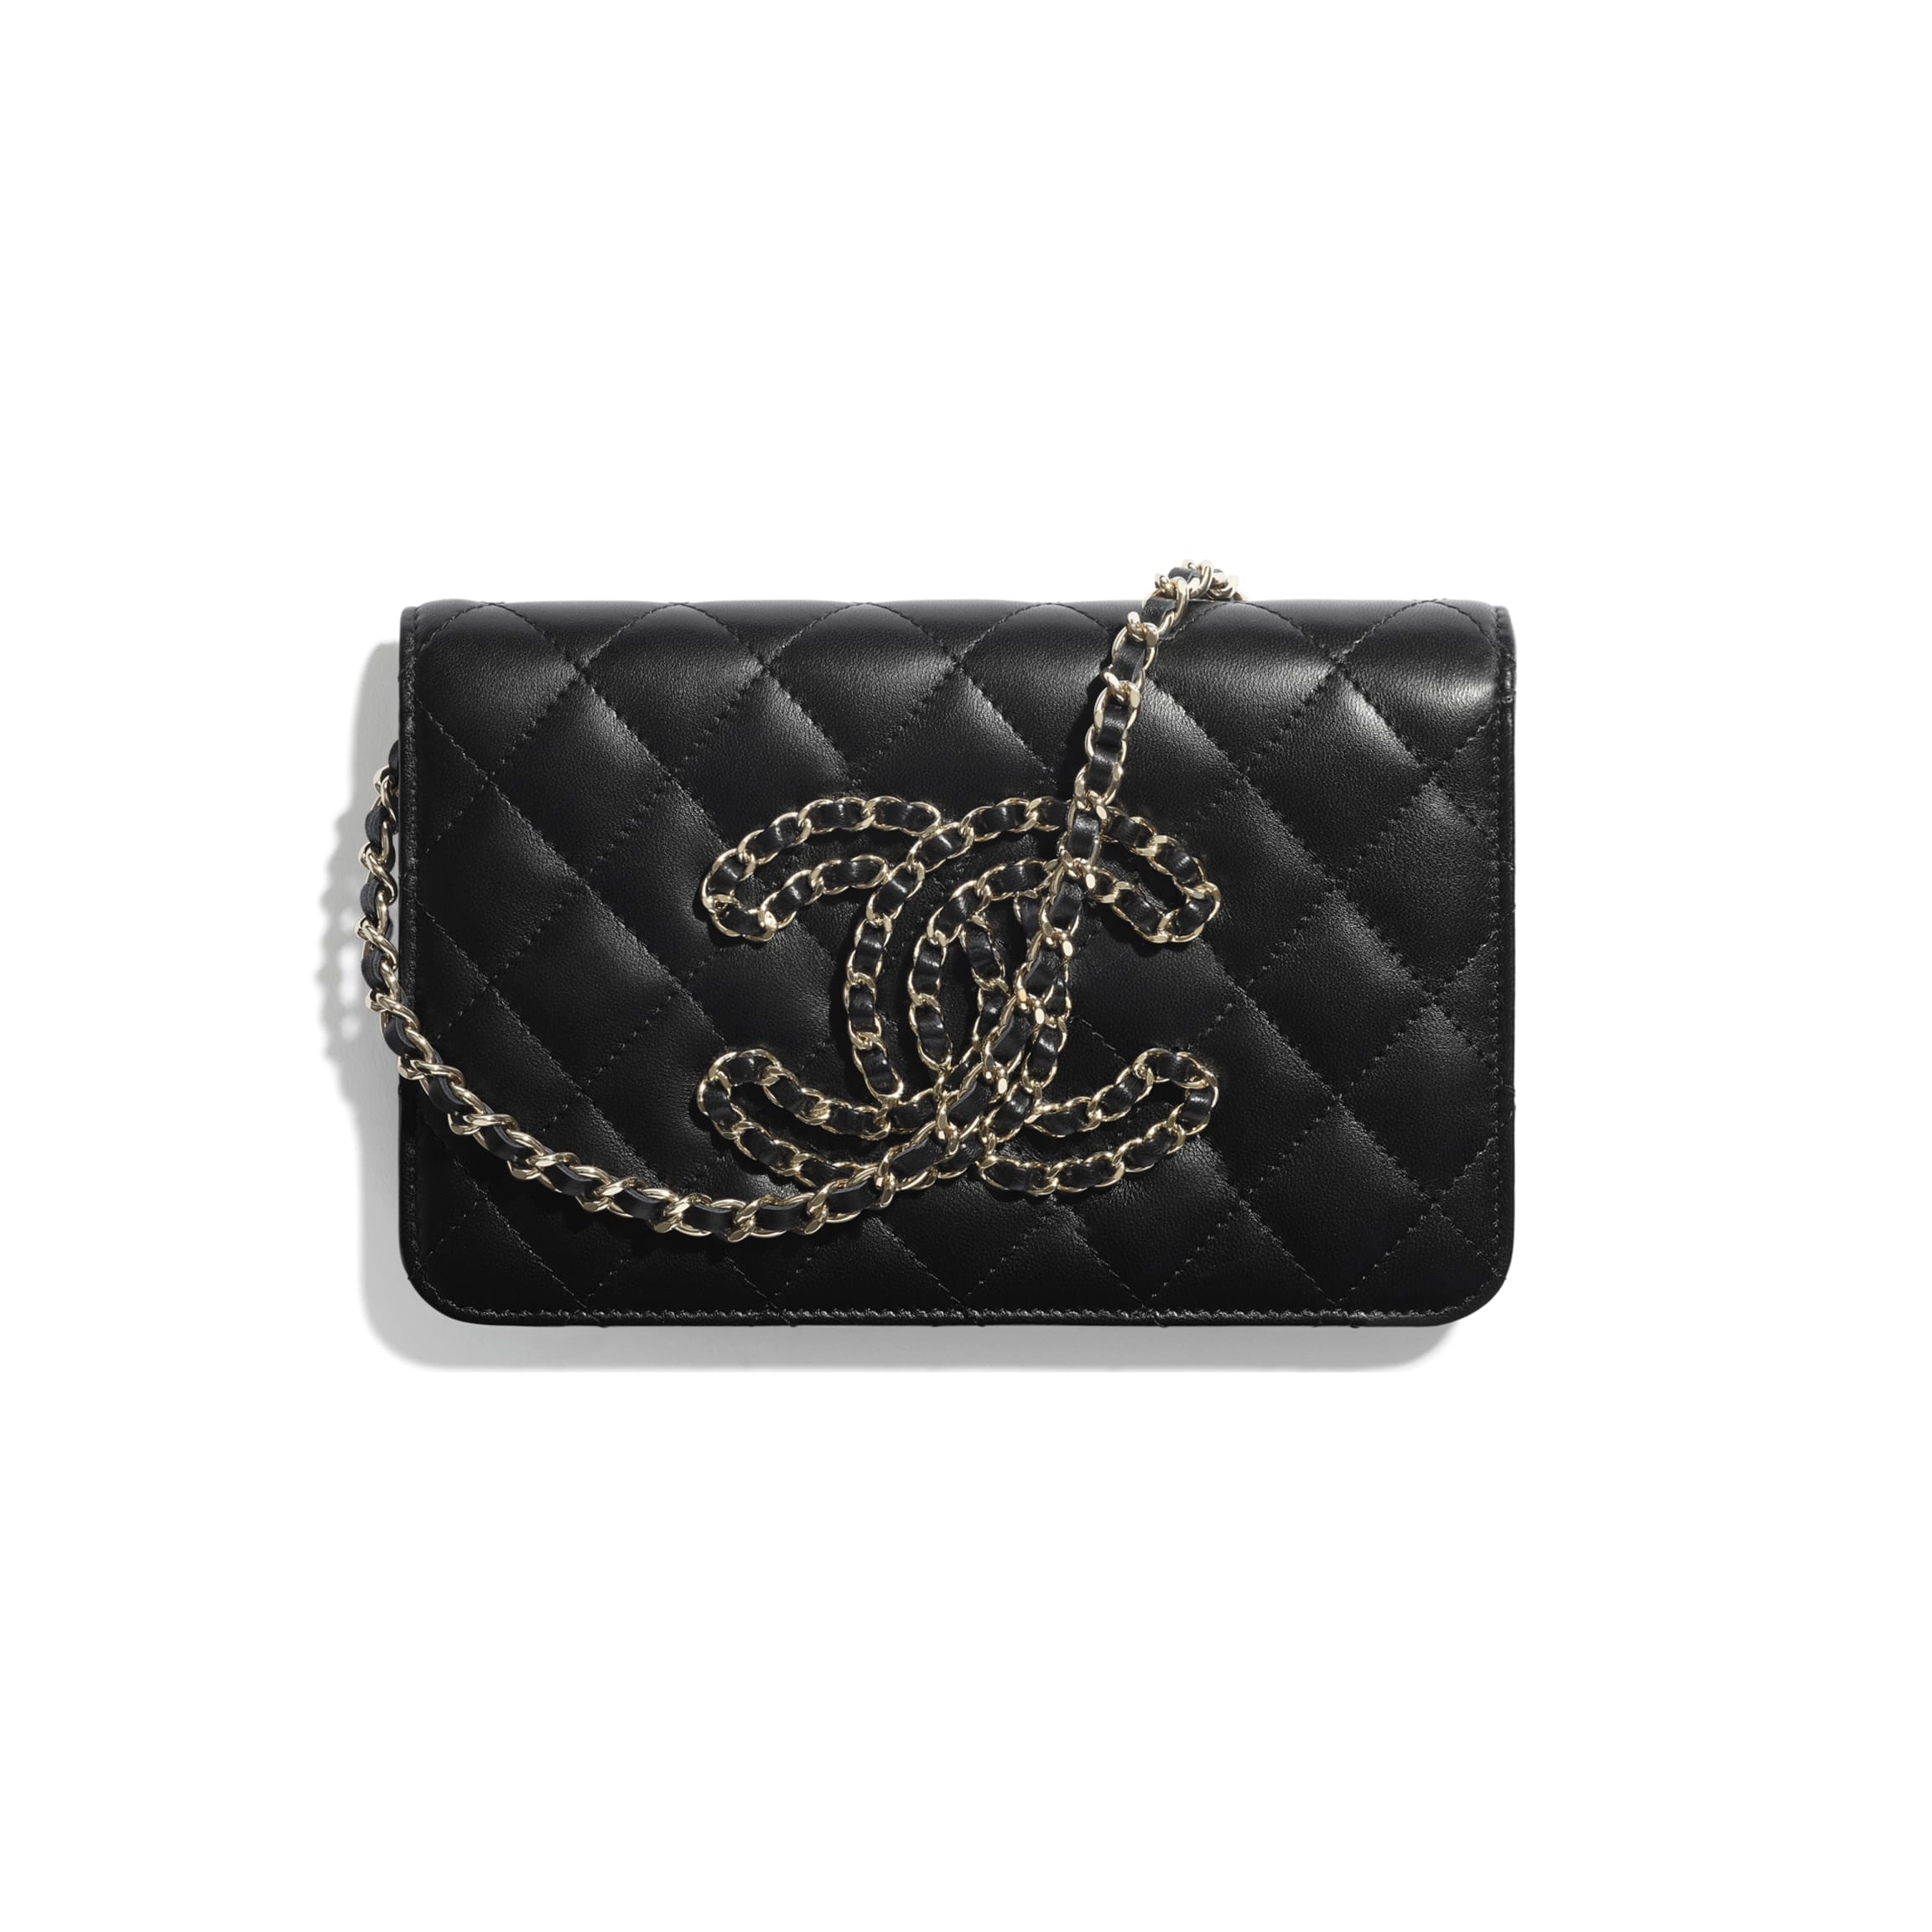 Wallet On Chain - Black - Lambskin - CHANEL - Default view - see full sized version